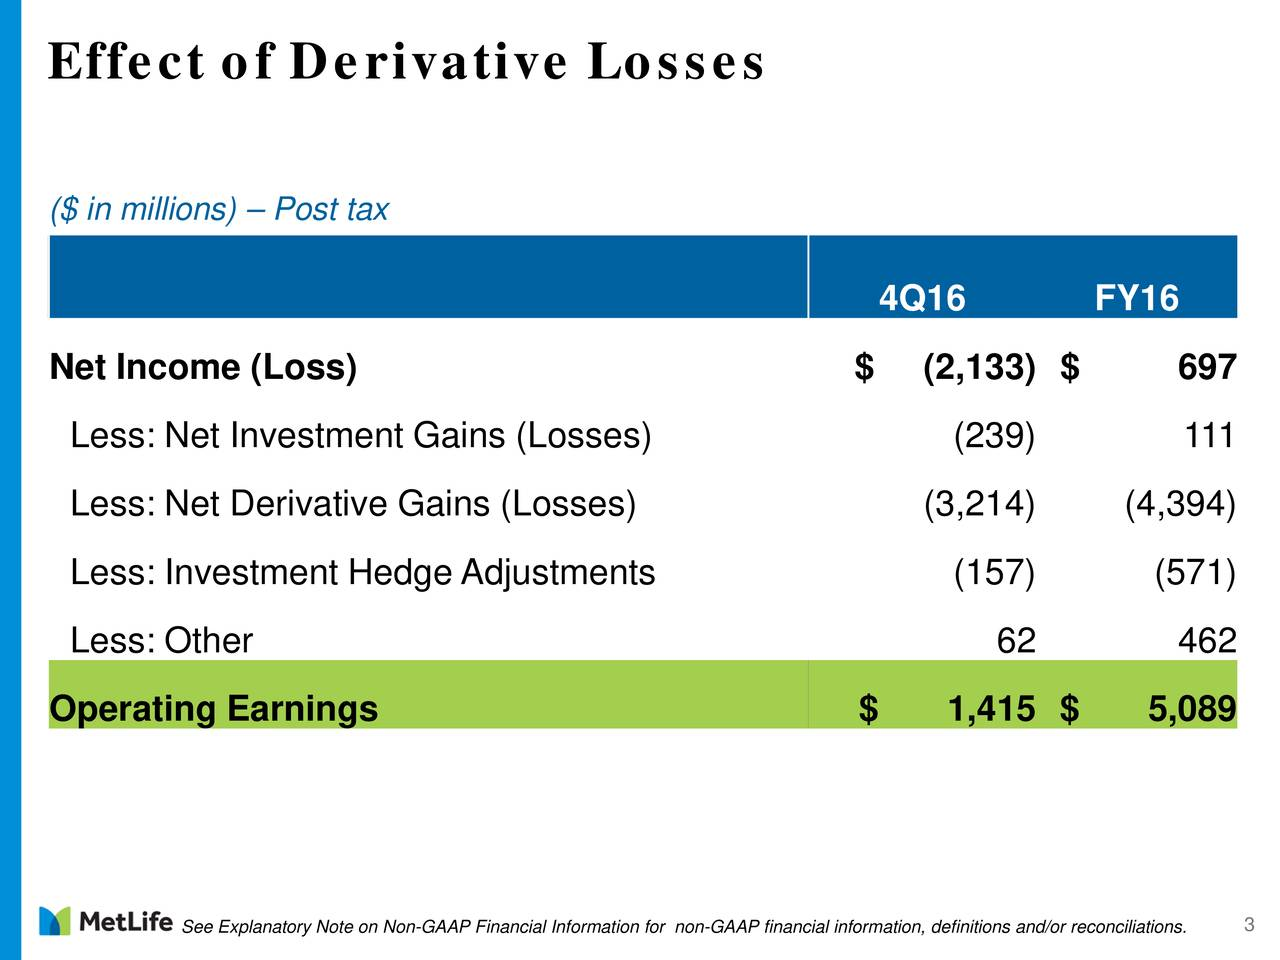 ($ in millions)  Post tax 4Q16 FY16 Net Income (Loss) $ (2,133) $ 697 Less: Net Investment Gains (Losses) (239) 111 Less: Net Derivative Gains (Losses) (3,214) (4,394) Less: Investment Hedge Adjustments (157) (571) Less: Other 62 462 Operating Earnings $ 1,415 $ 5,089 See Explanatory Note on Non-GAAP Financial Information for non-GAAP financial information, definitions and/or reconciliations.